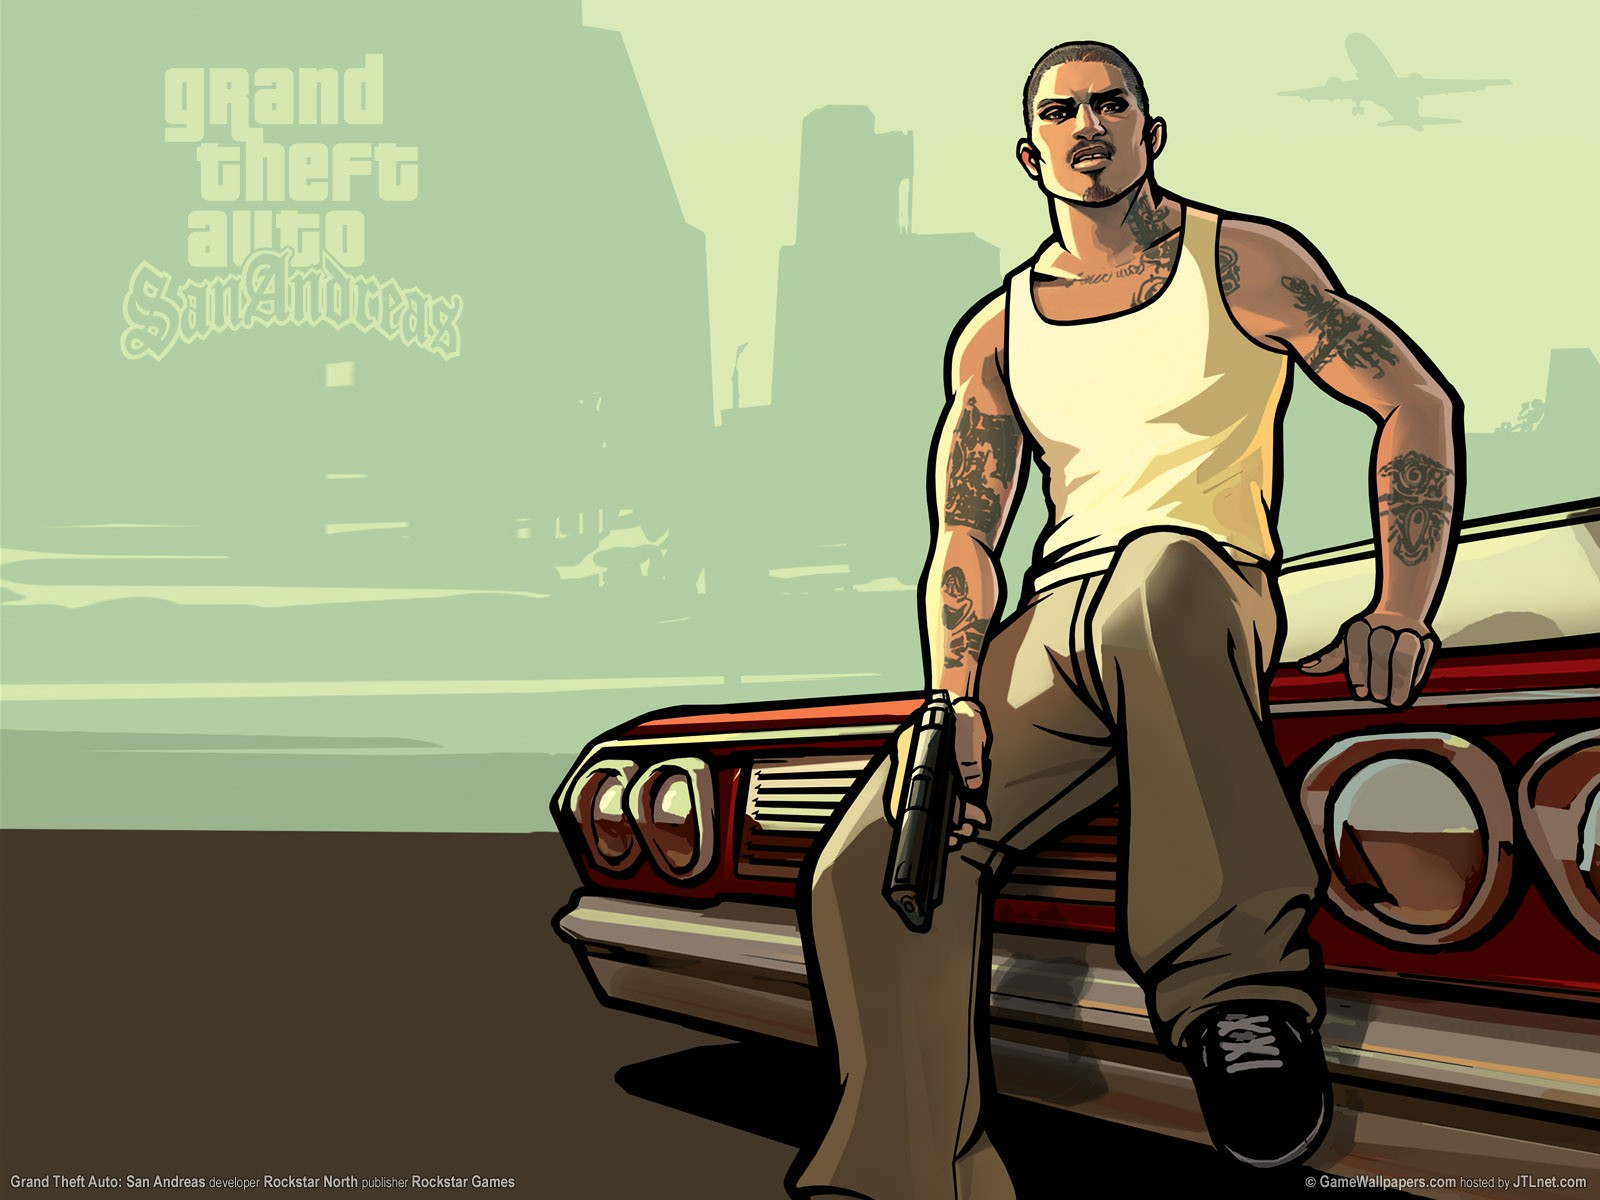 Naked cheat for grand theft auto san andreas